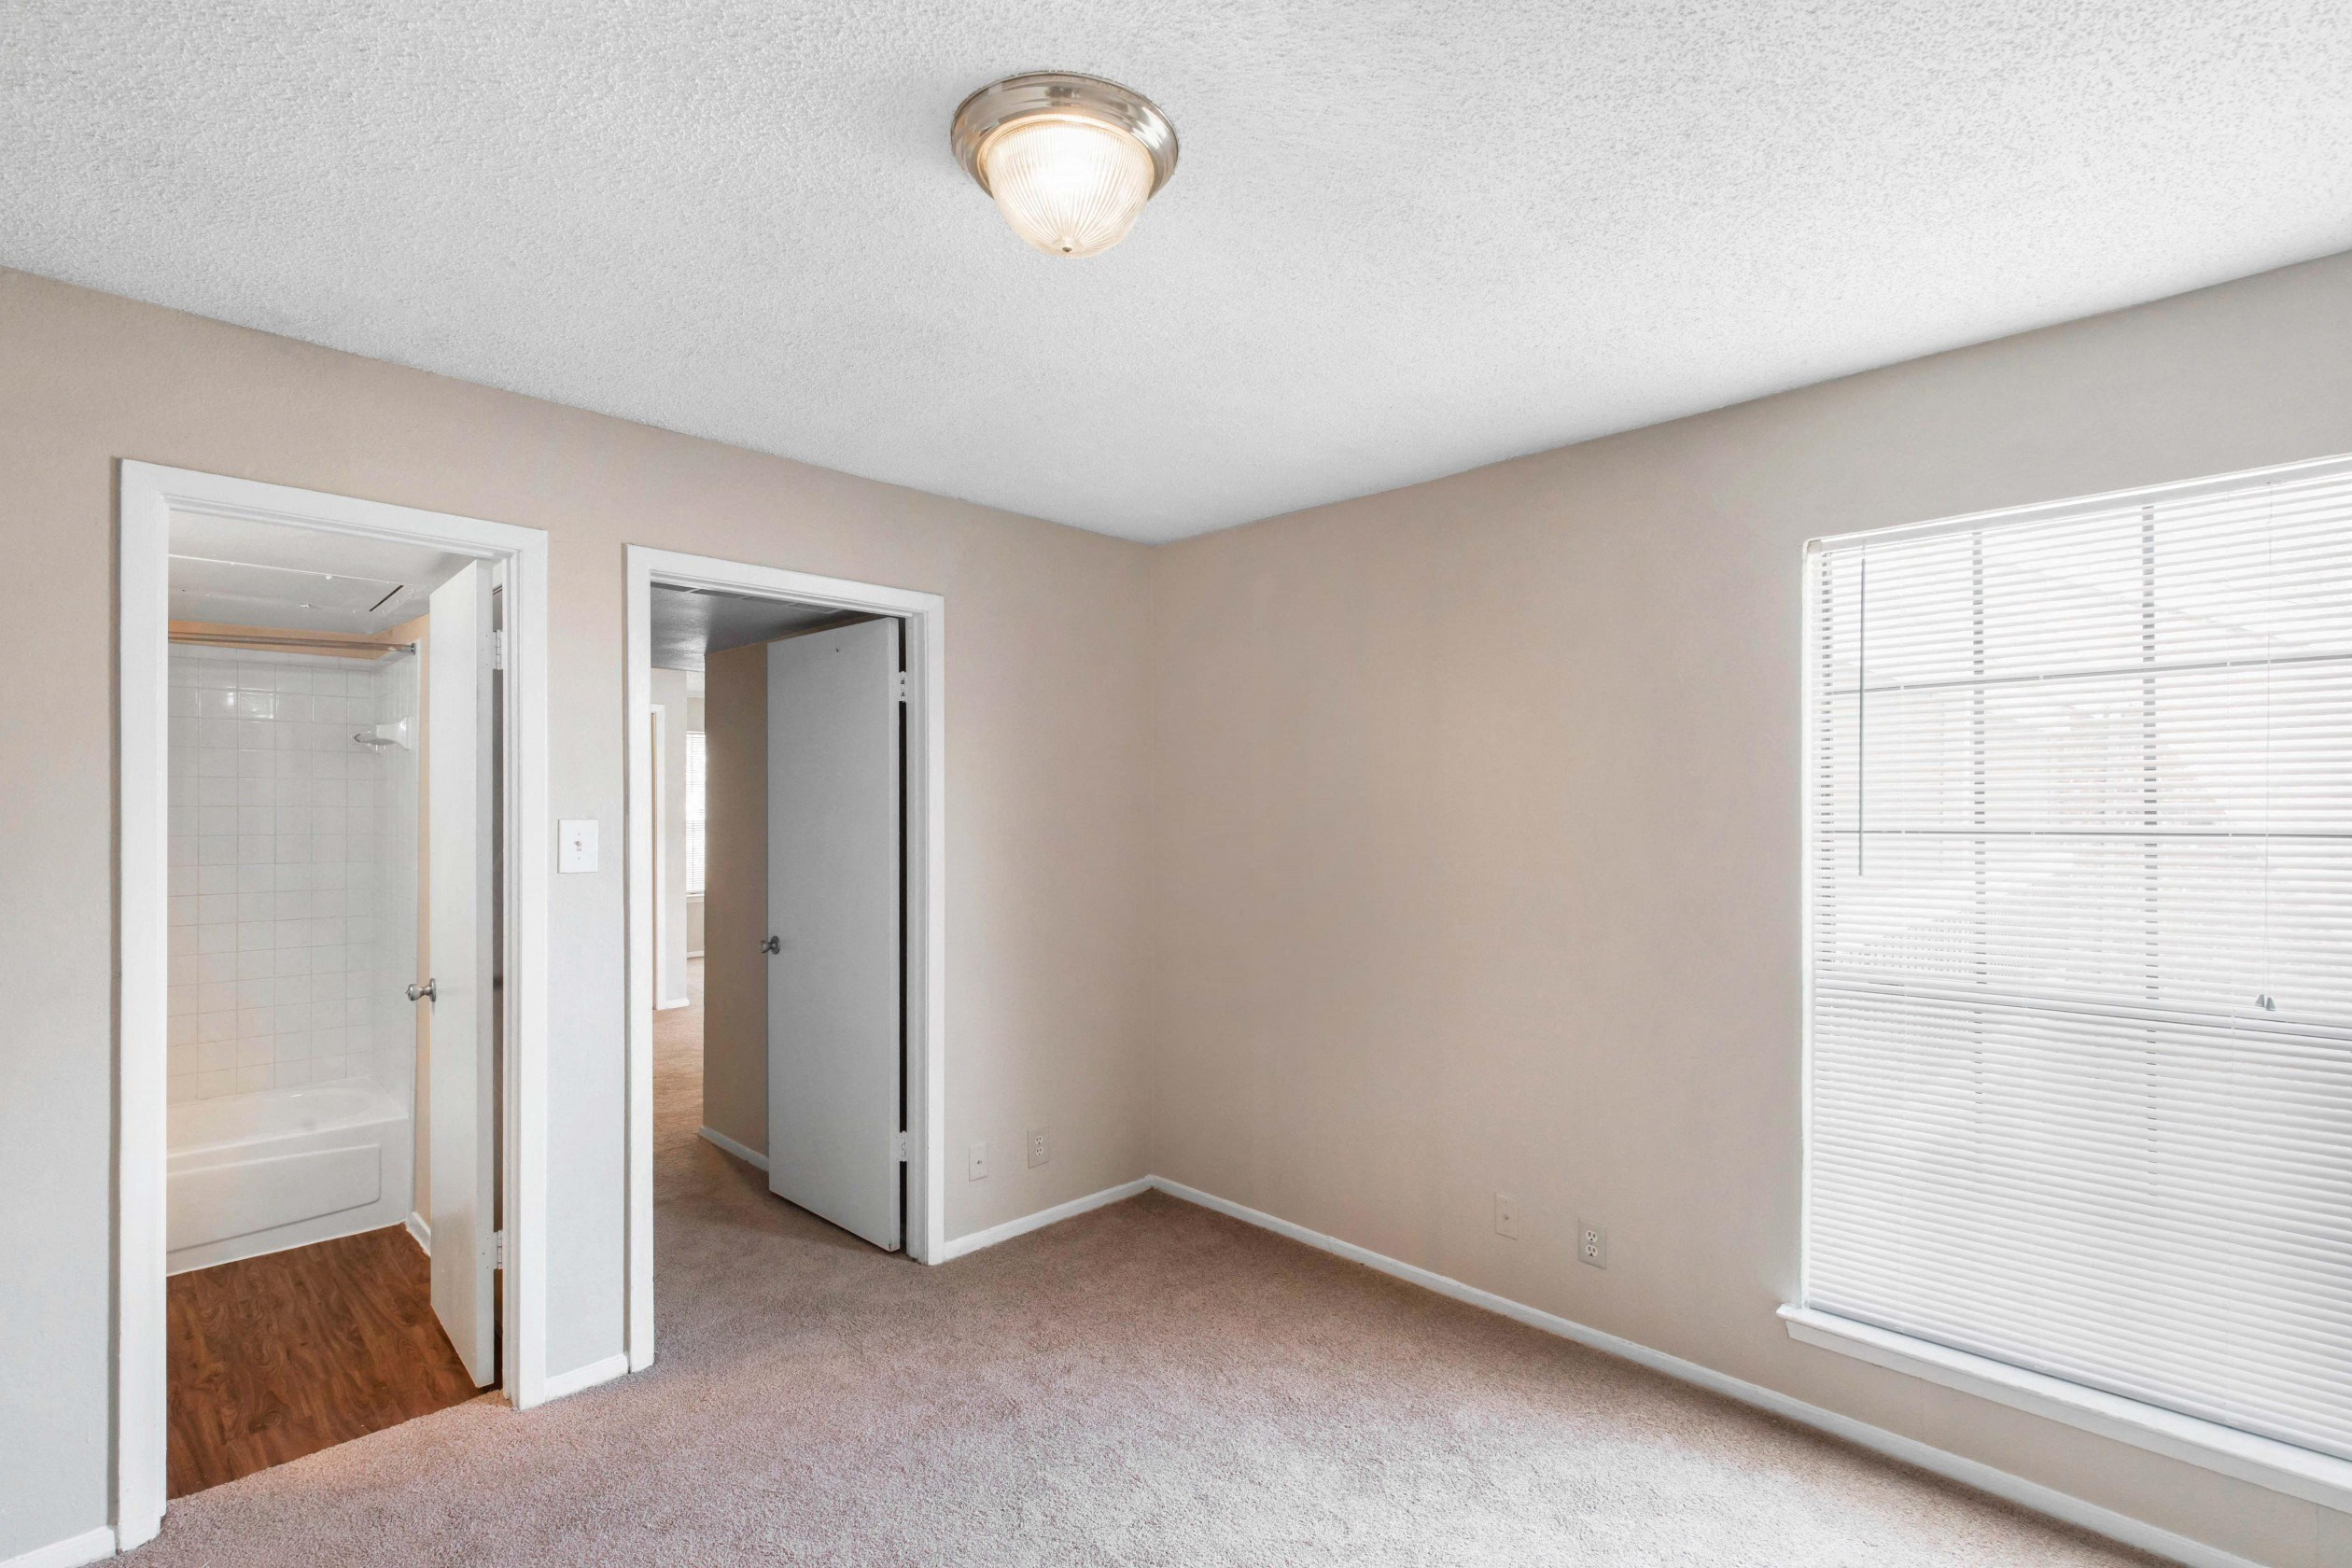 Bedroom with wall to wall carpet, spacious window with white blinds, and en-suit bathroom, with peach colored walls and white trim